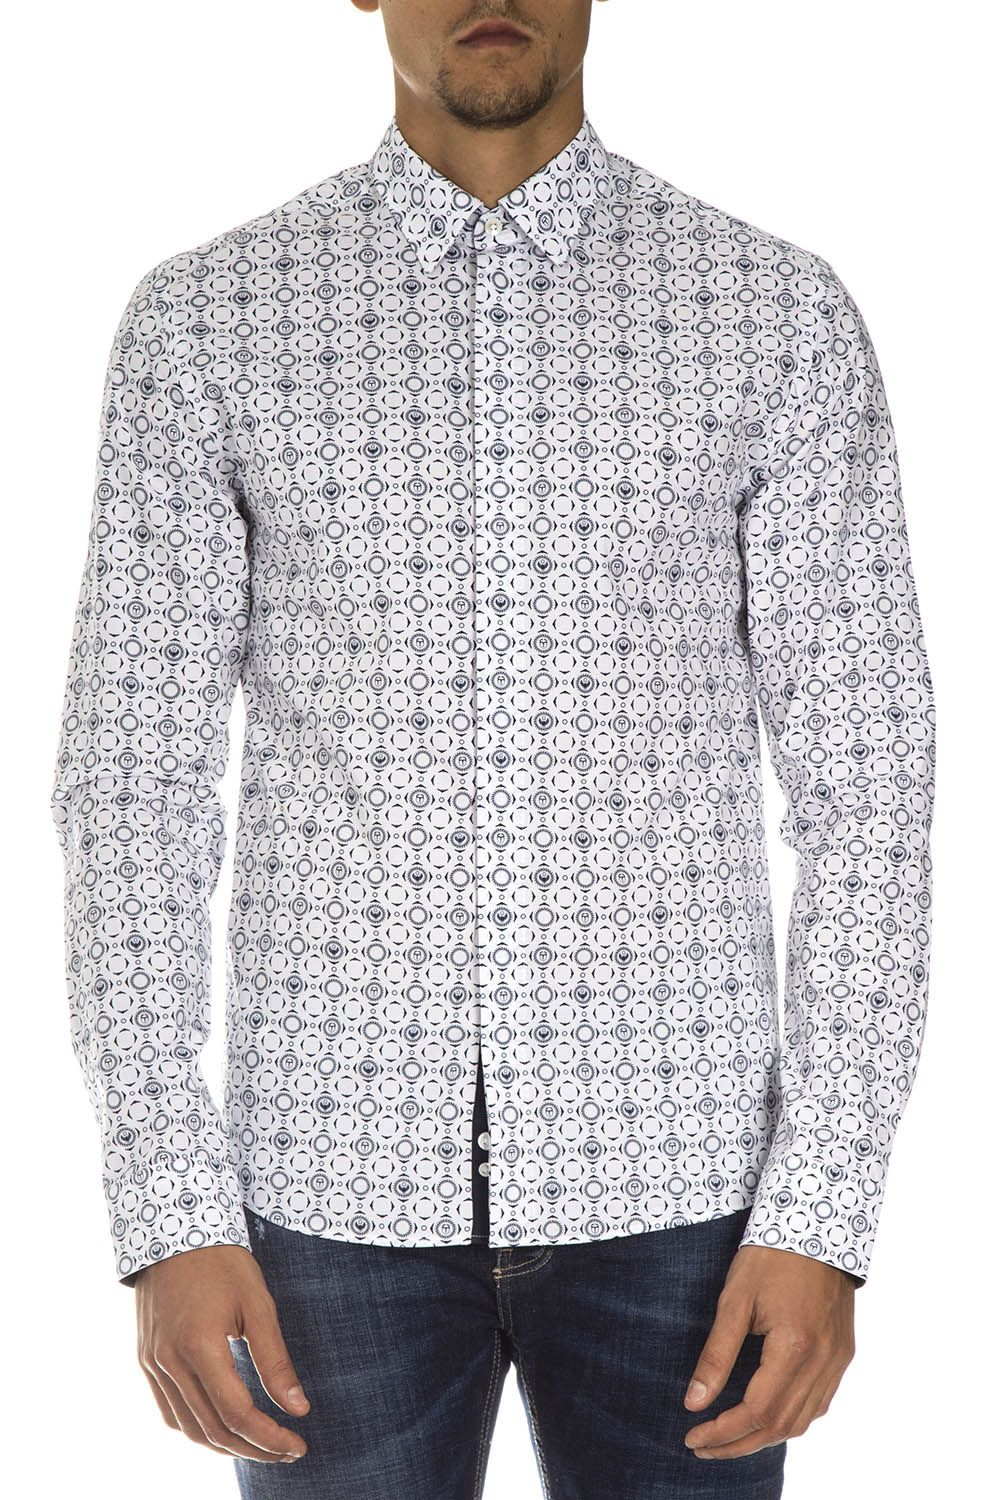 Frankie Morello White Cotton Shirt With Contrasting Print All Over